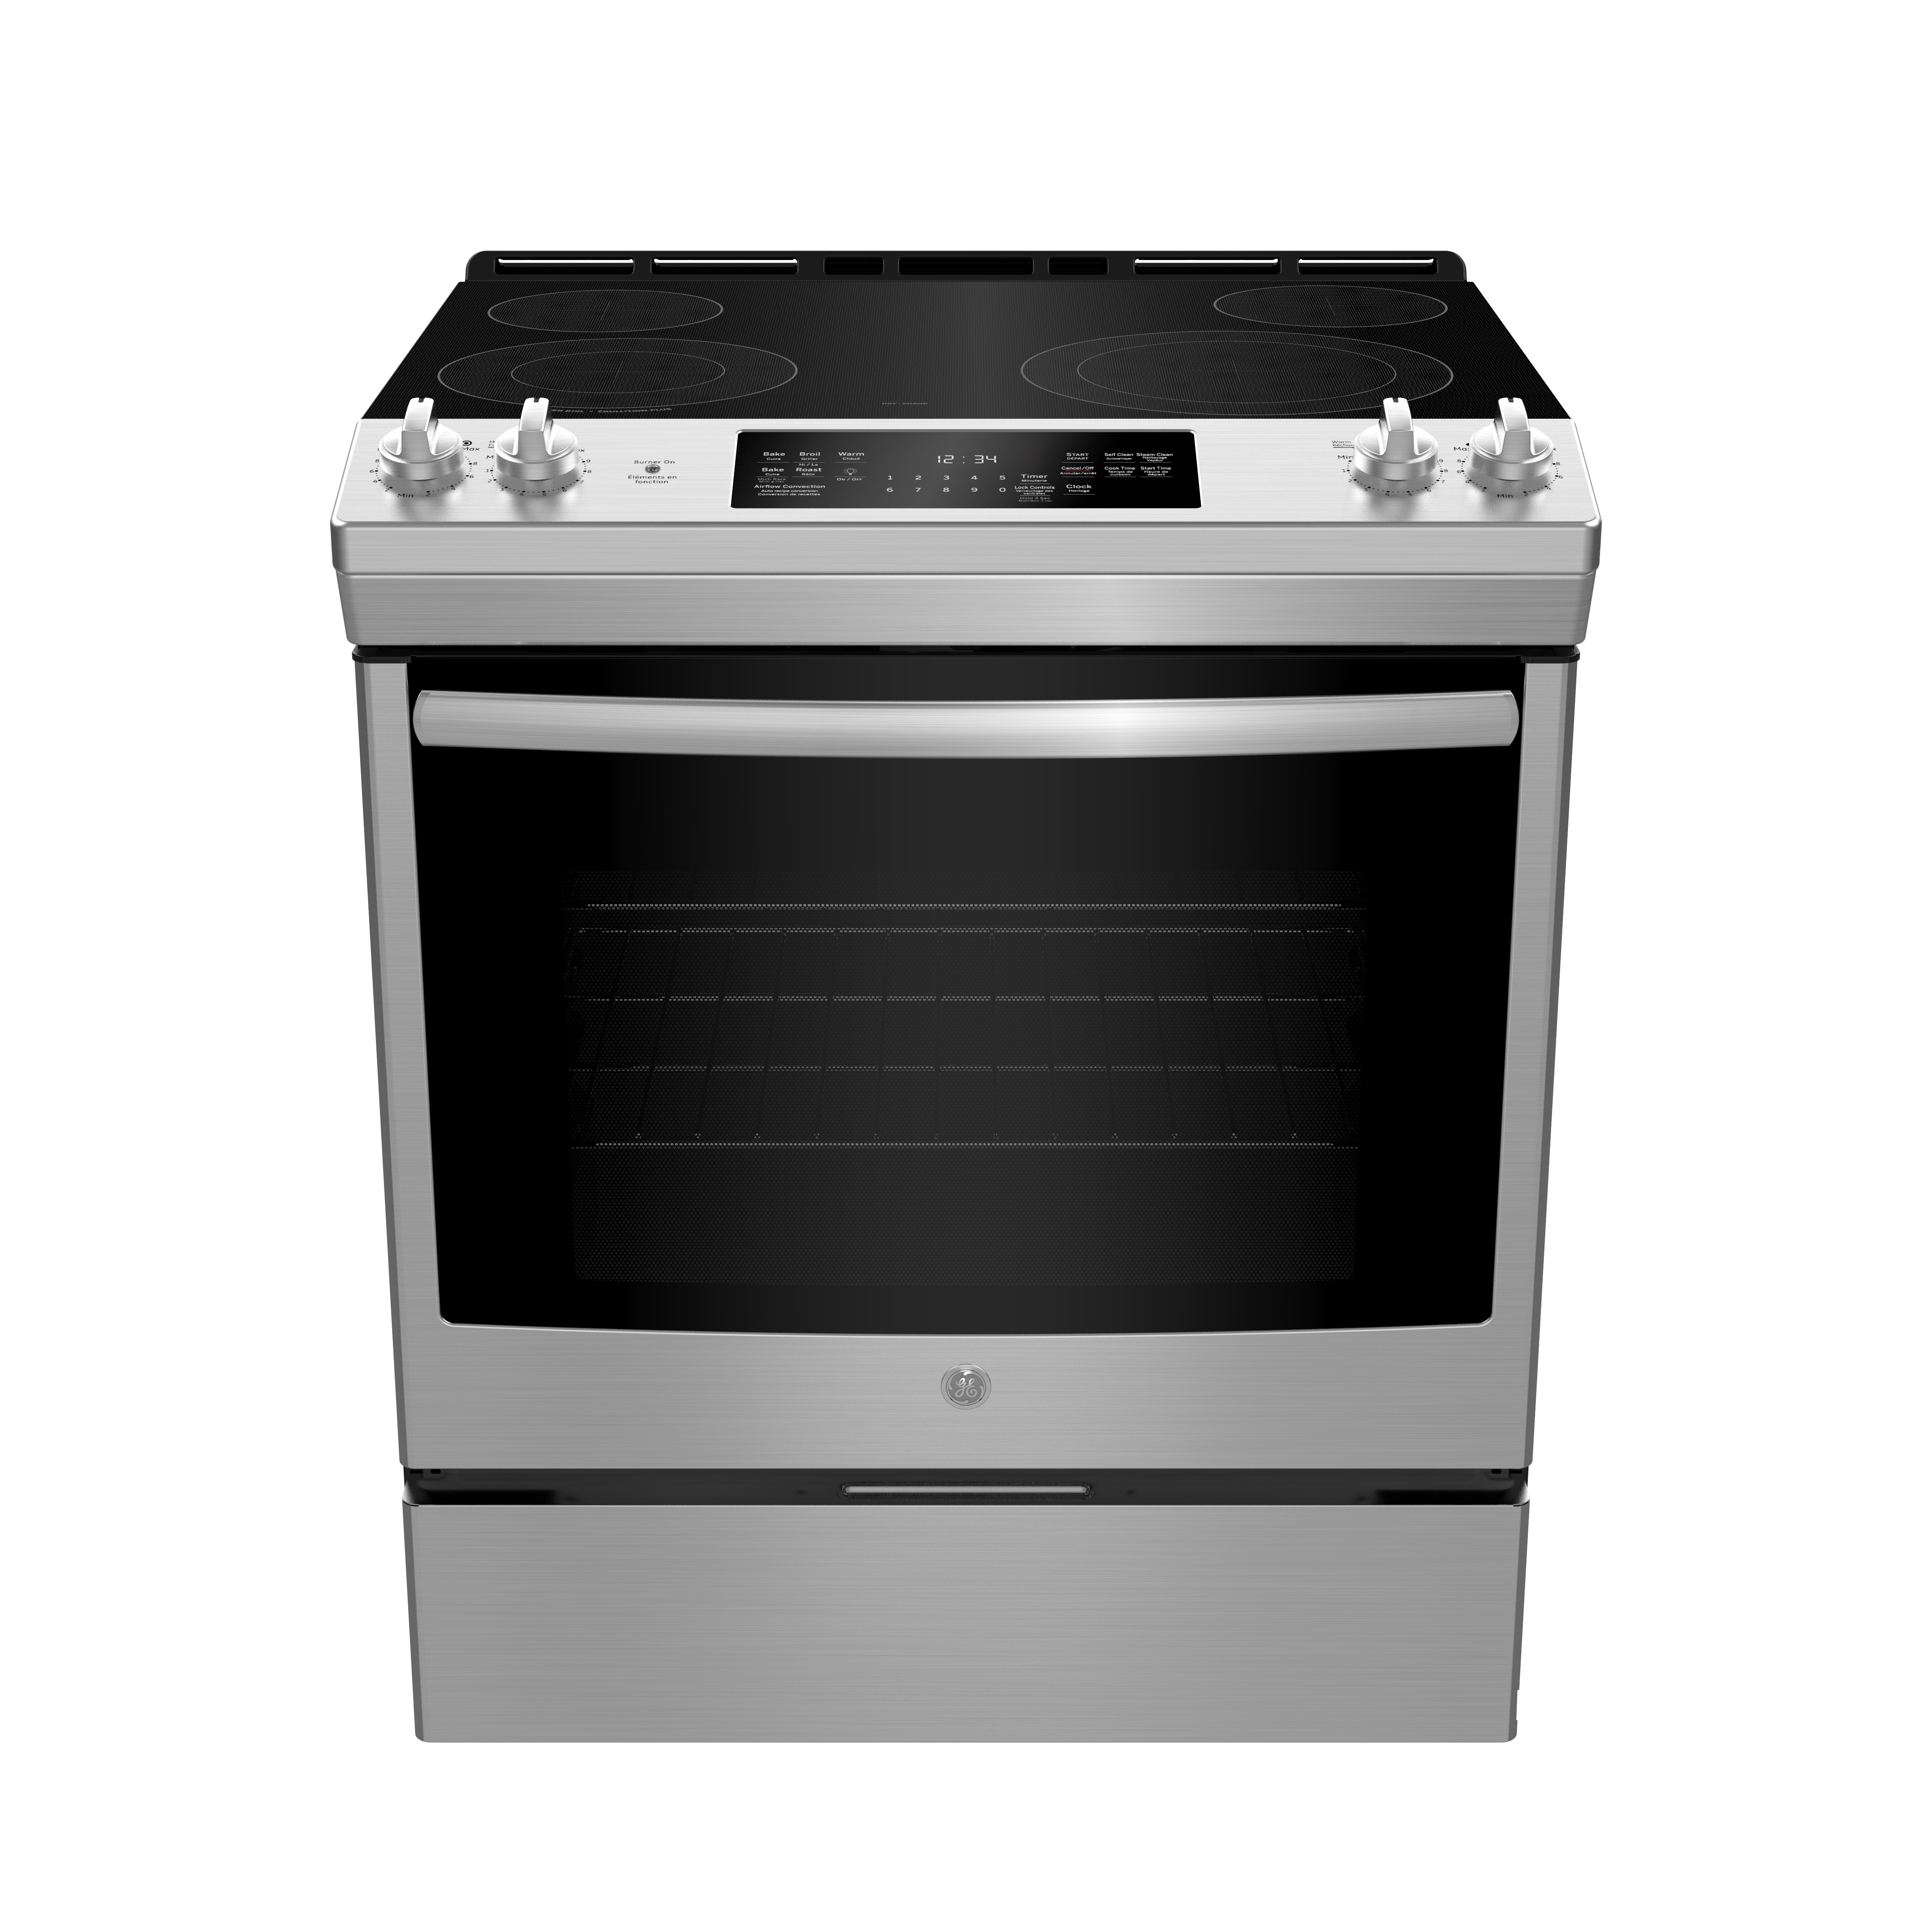 GE Range 30 StainlessSteel JCS830SMSS in Stainless Steel color showcased by Corbeil Electro Store